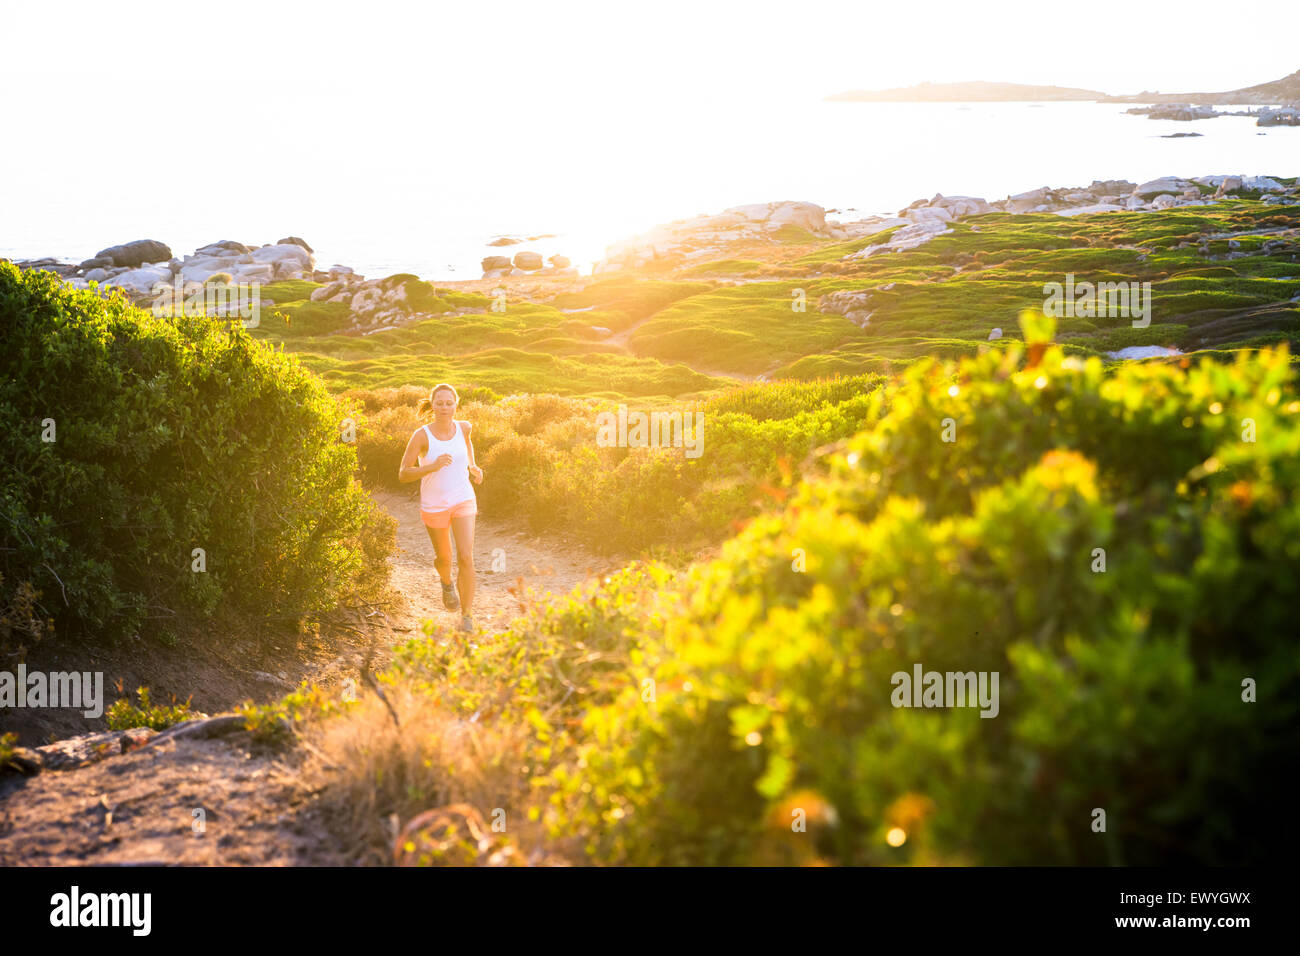 Girl jogging on trail, Corsica, France - Stock Image